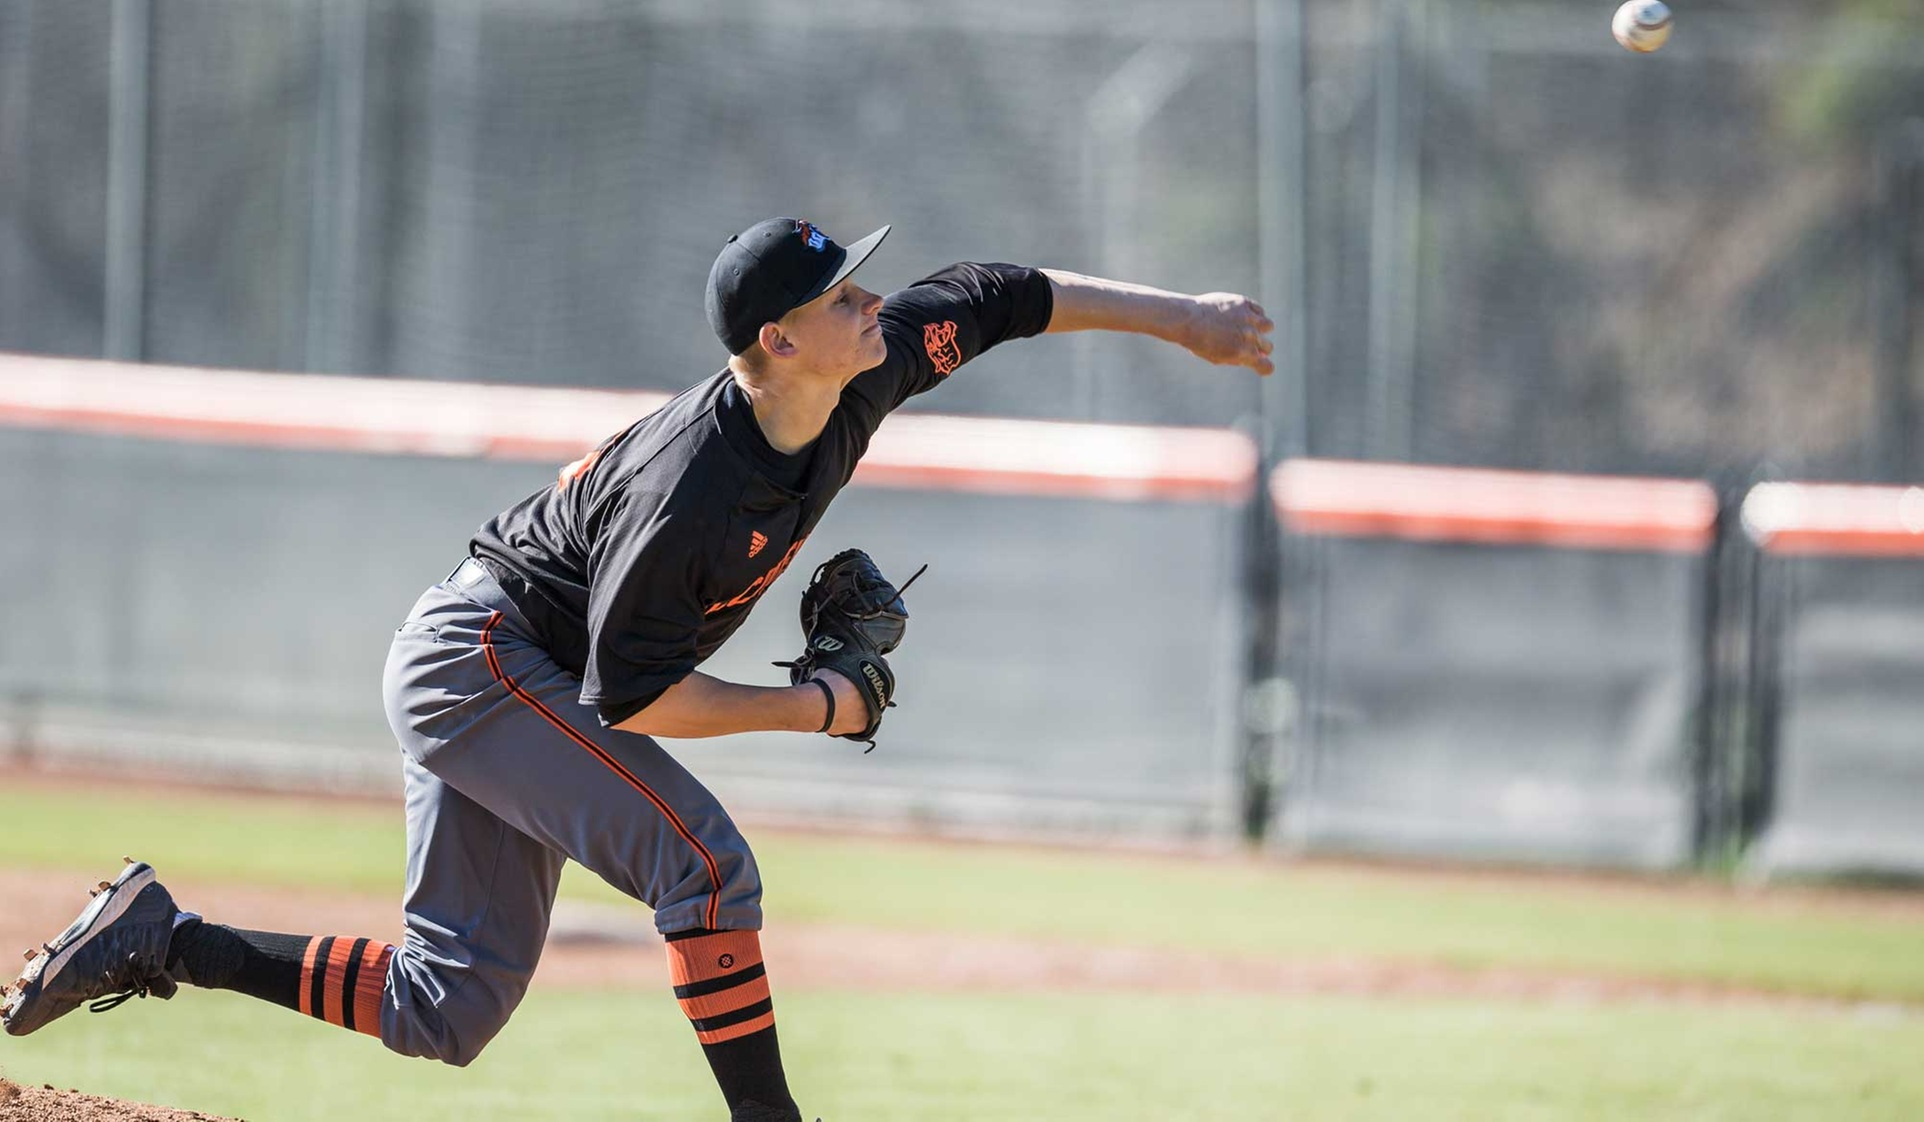 Drew Edges Oxy With Comeback